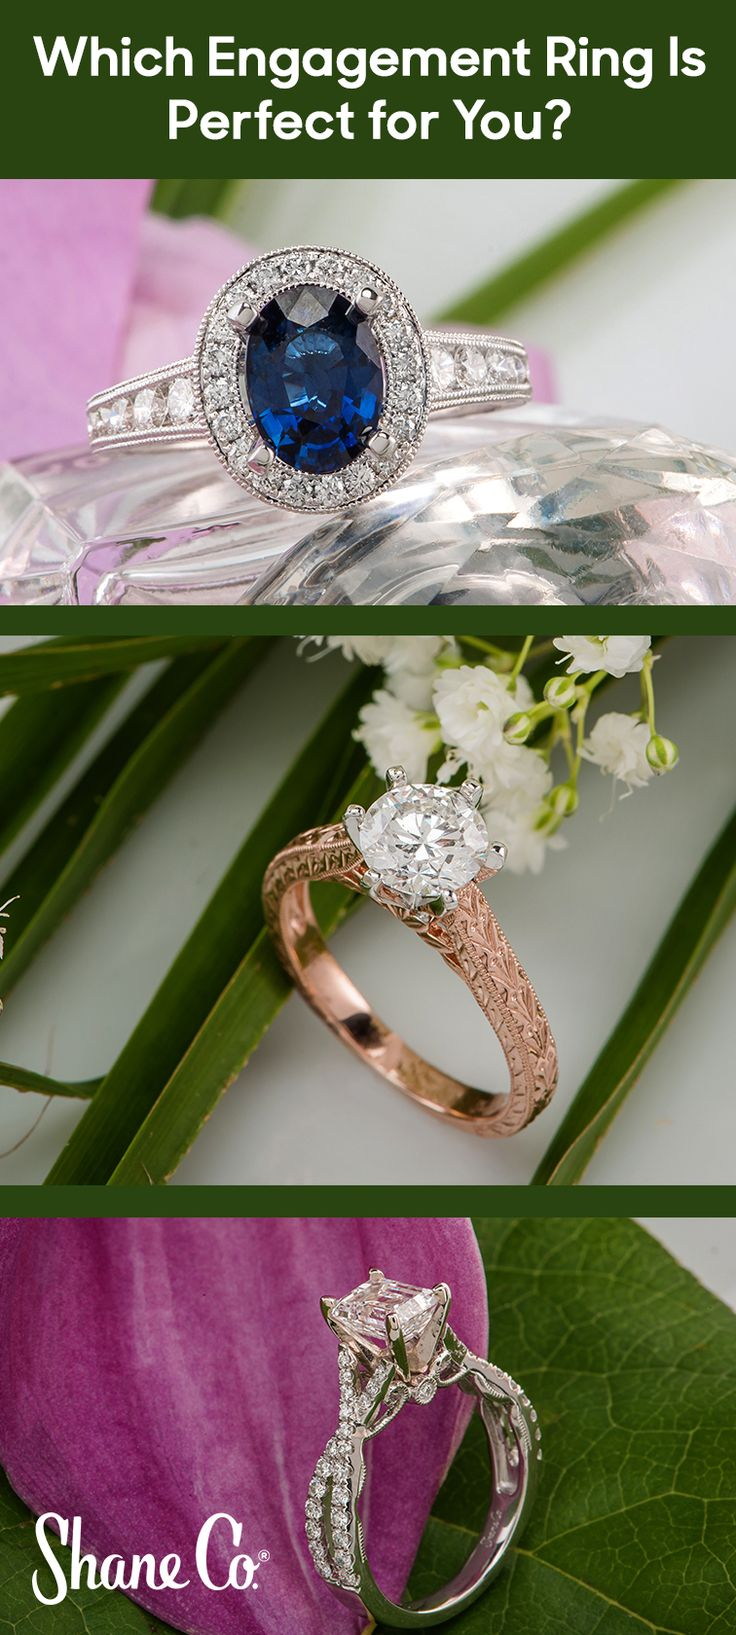 ring a bling shane company wedding bands Browse hundreds of exclusive engagement ring designs all backed by our Free Lifetime Warranty Explore engagement rings from Shane Co